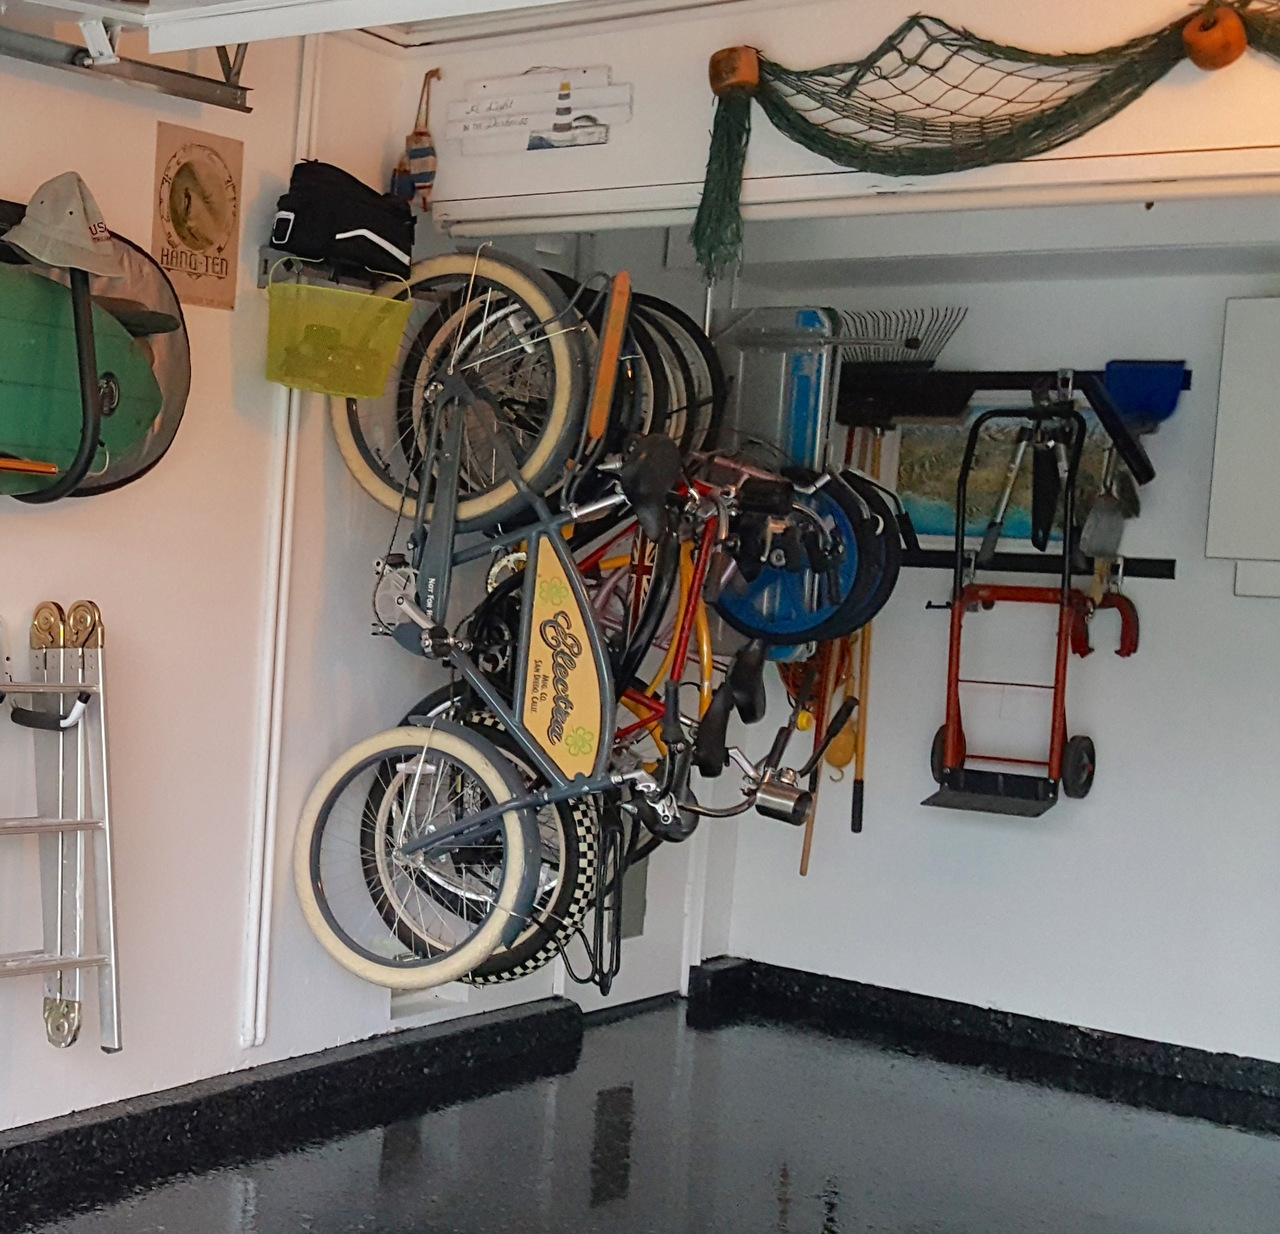 shed storage in wall bike for products bikes up mount to hang holds duty indoor heavy zappabikehang garage vertical system